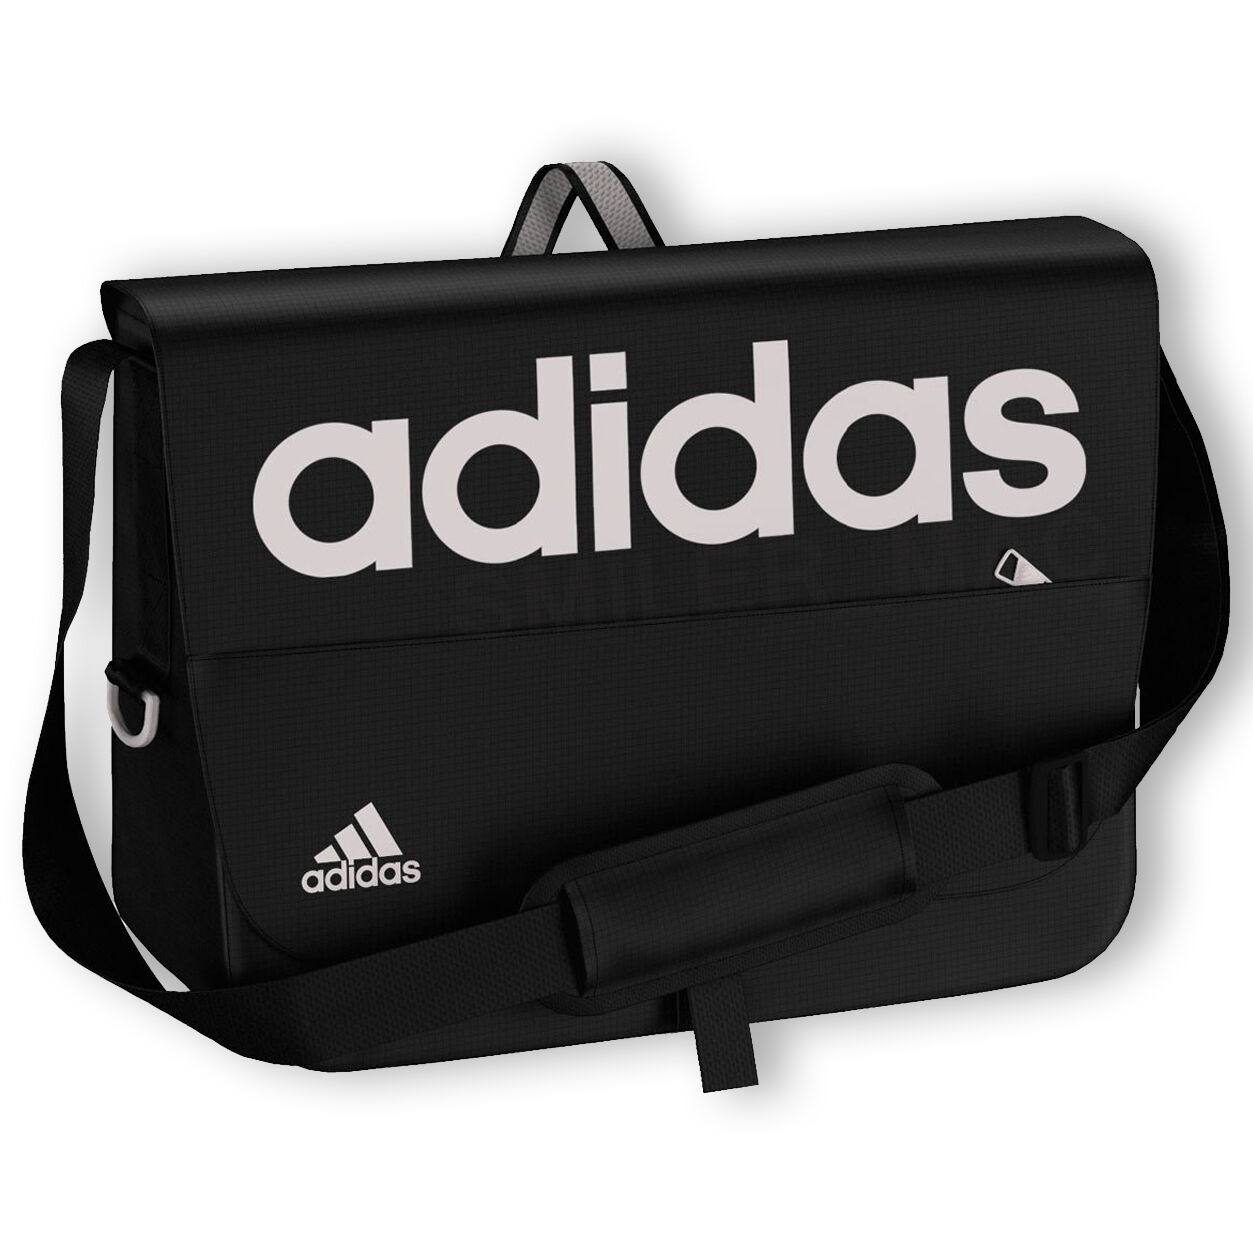 152d8f46fa0a Black adidas Linear Messenger bag with grey logo. The Adidas Linear bag is  great for college